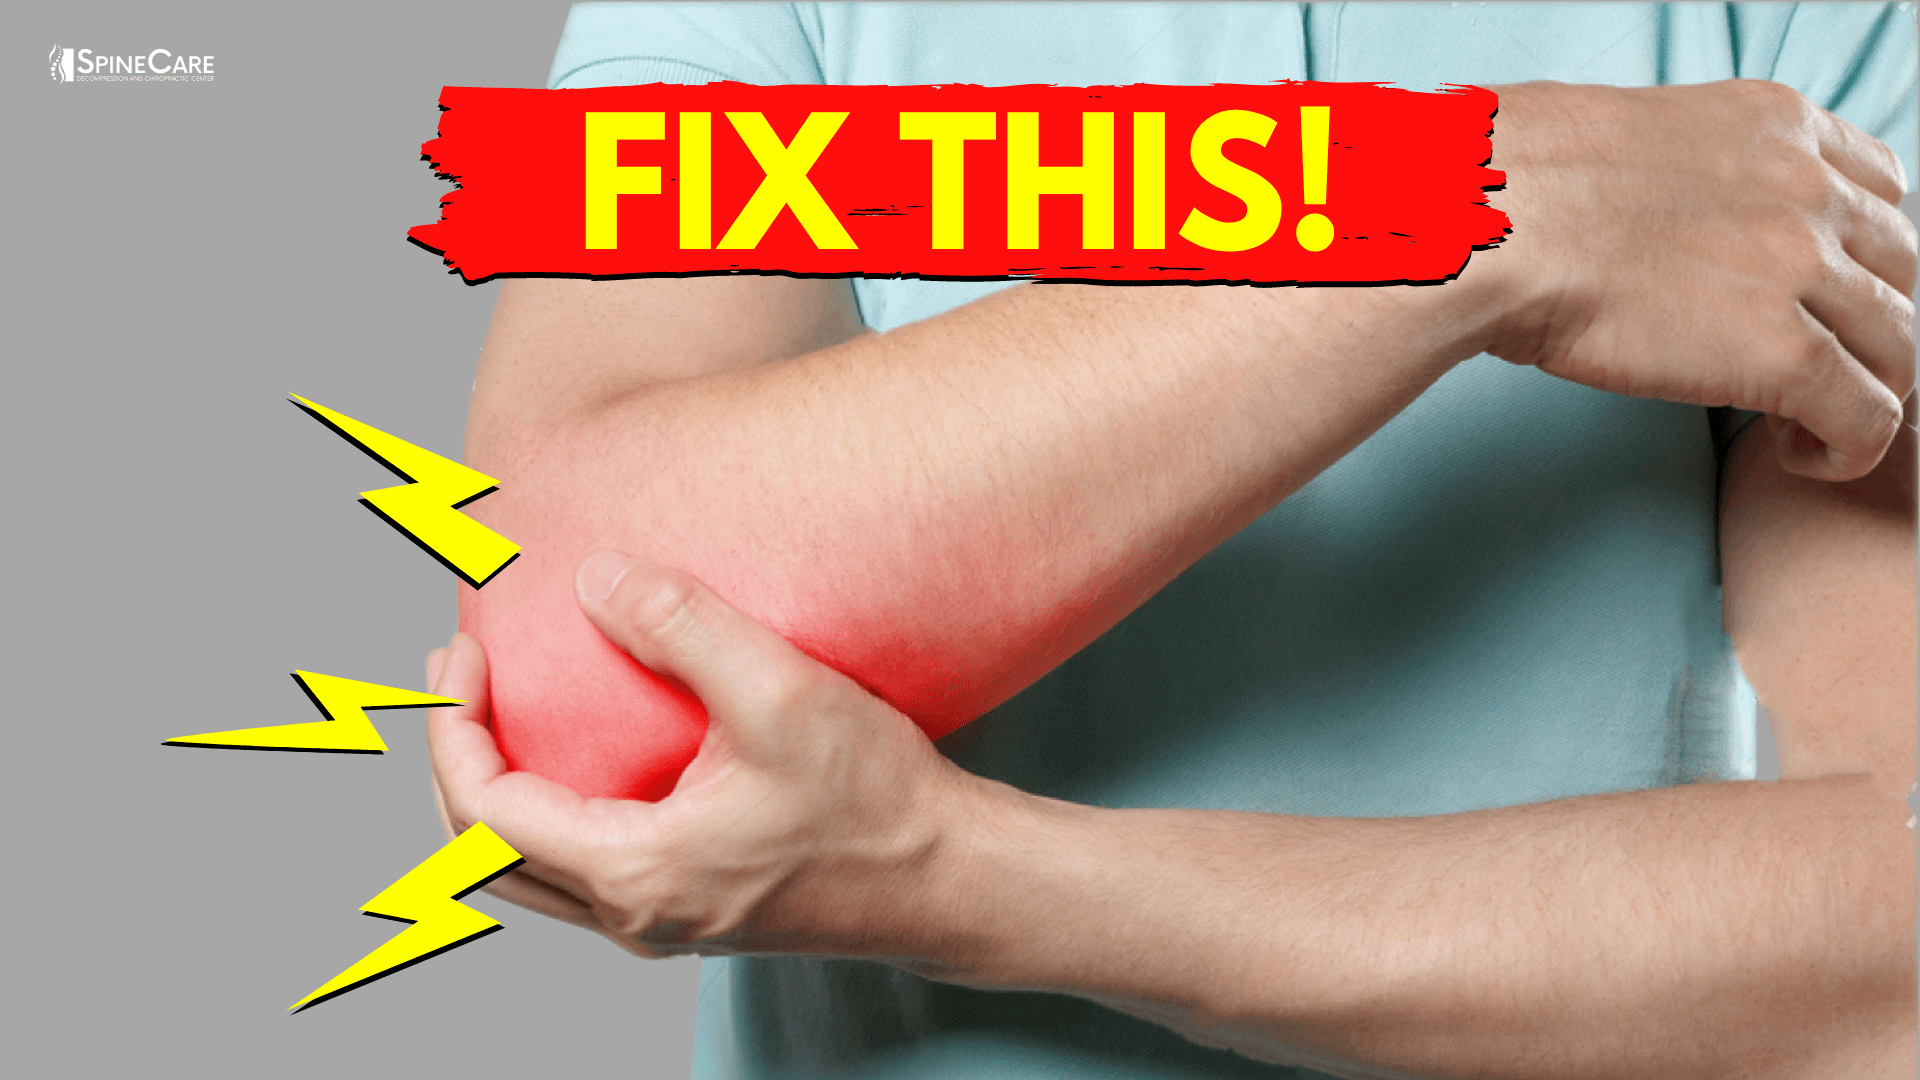 How to Fix Elbow Popping Sounds in 30 SECONDS   SpineCare   St. Joseph, Michigan Chiropractor